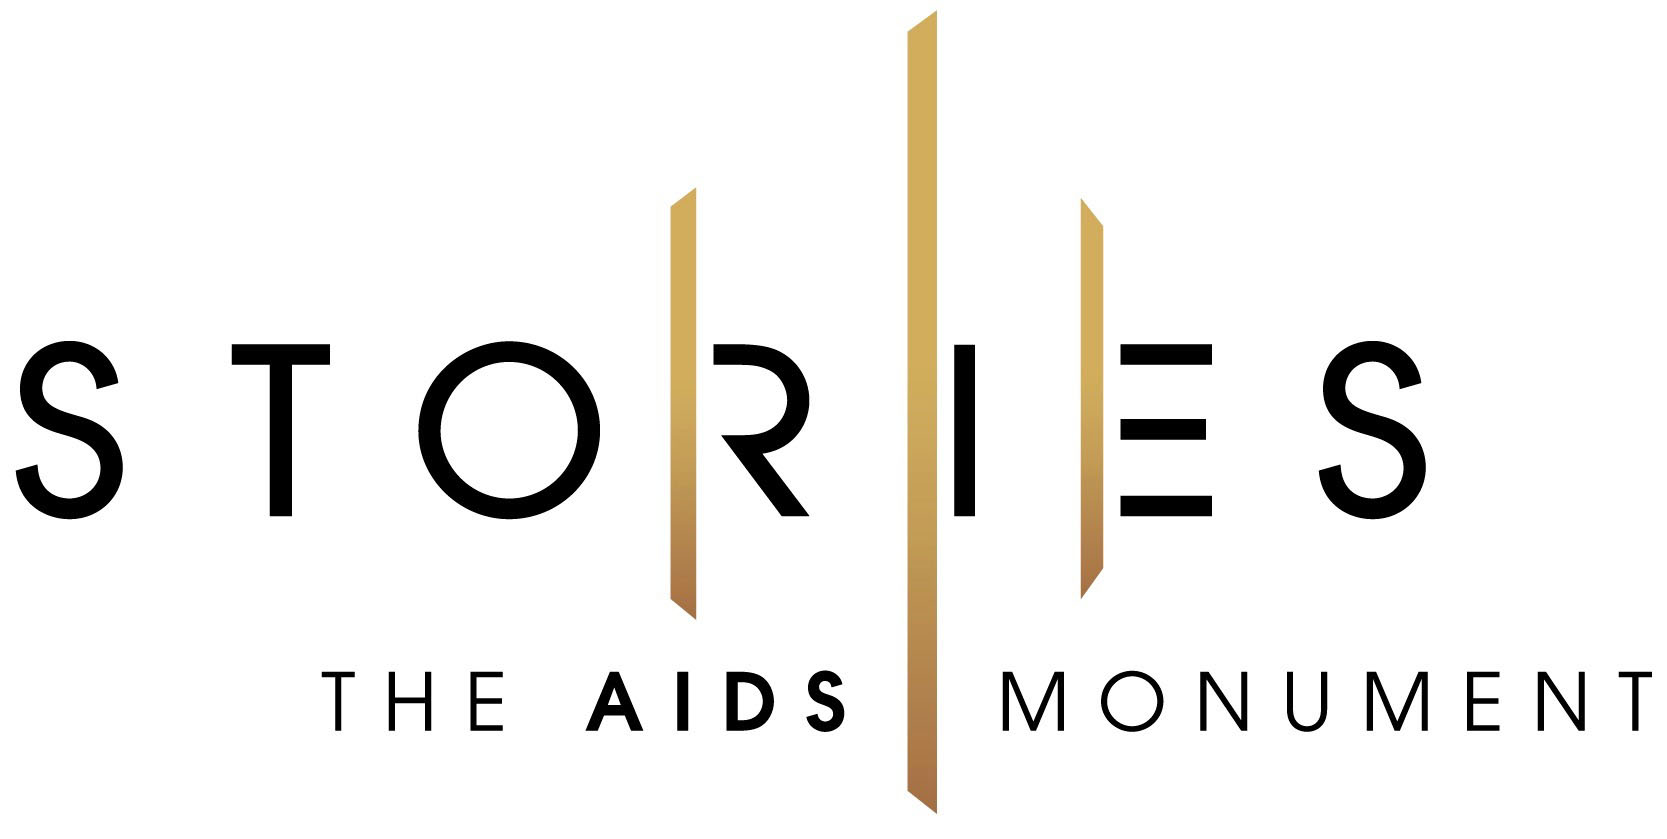 6-6-19 Foundation for AIDS Monument Logo.jpg